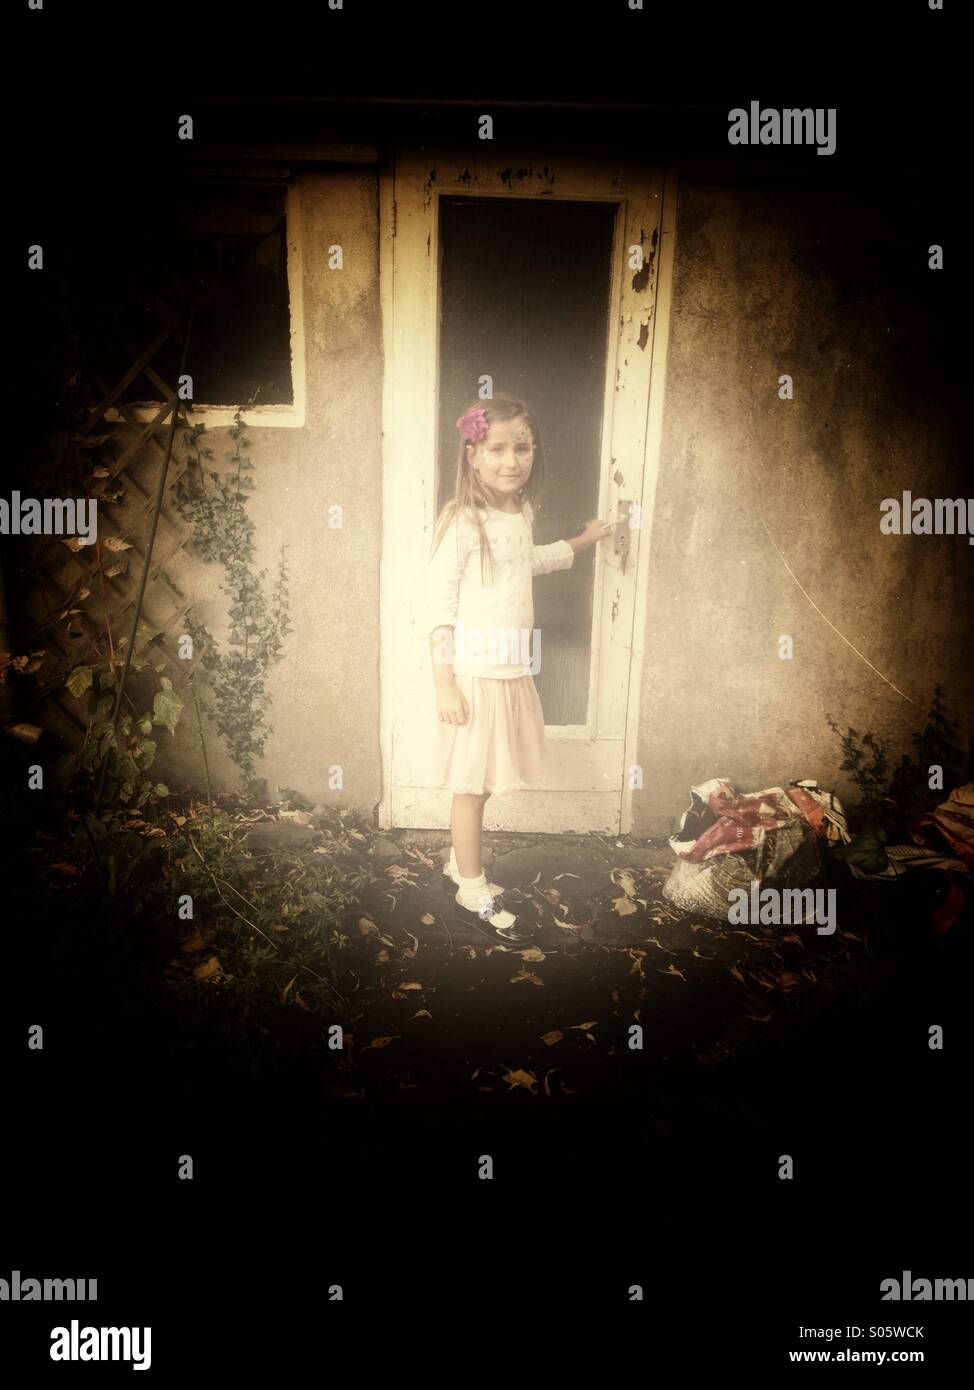 Girl opening door - Stock Image